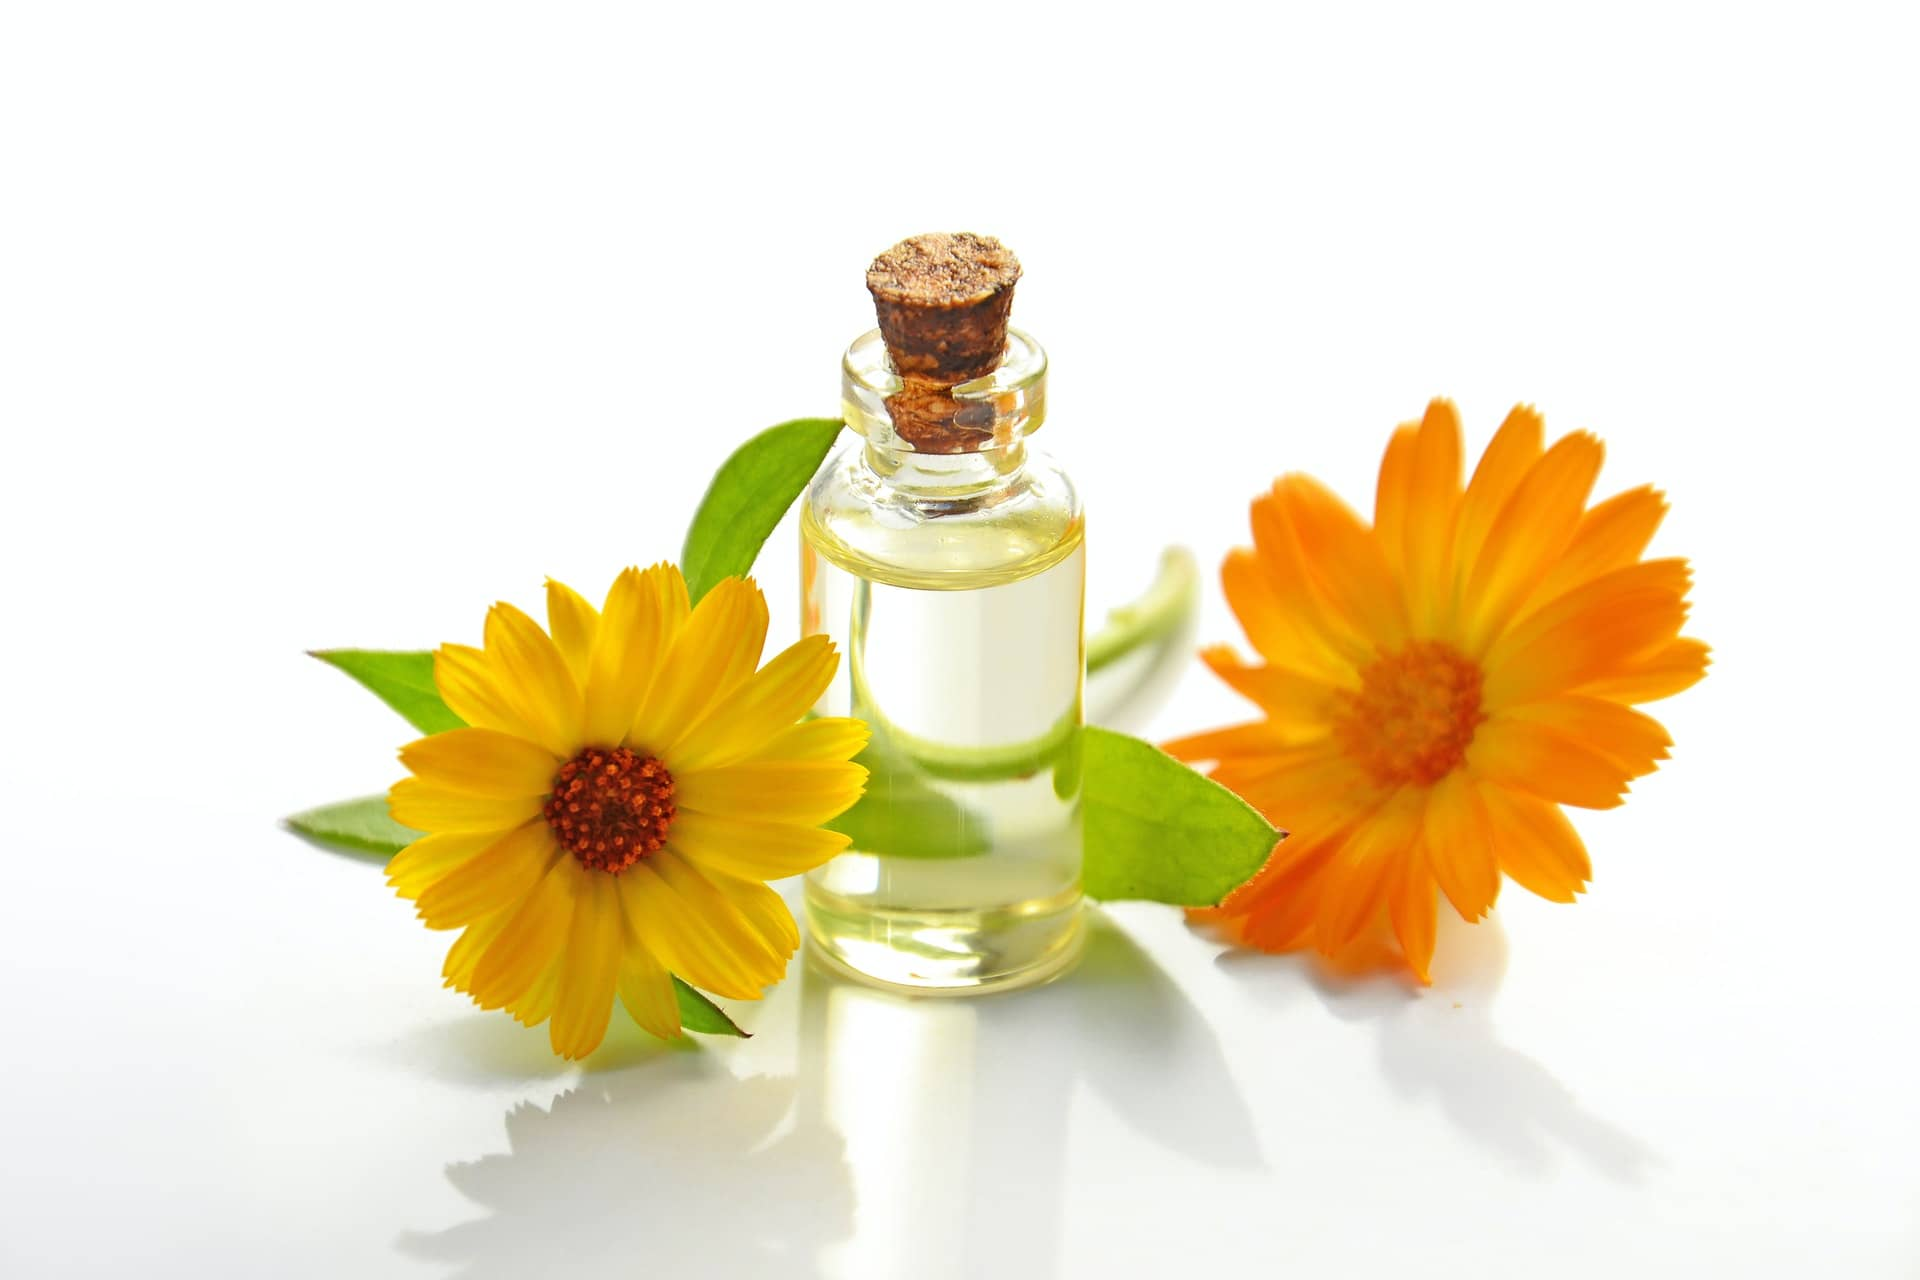 Oil in a clear glass bottle, surrounded by Gerbera flowers which are yellow and orange.